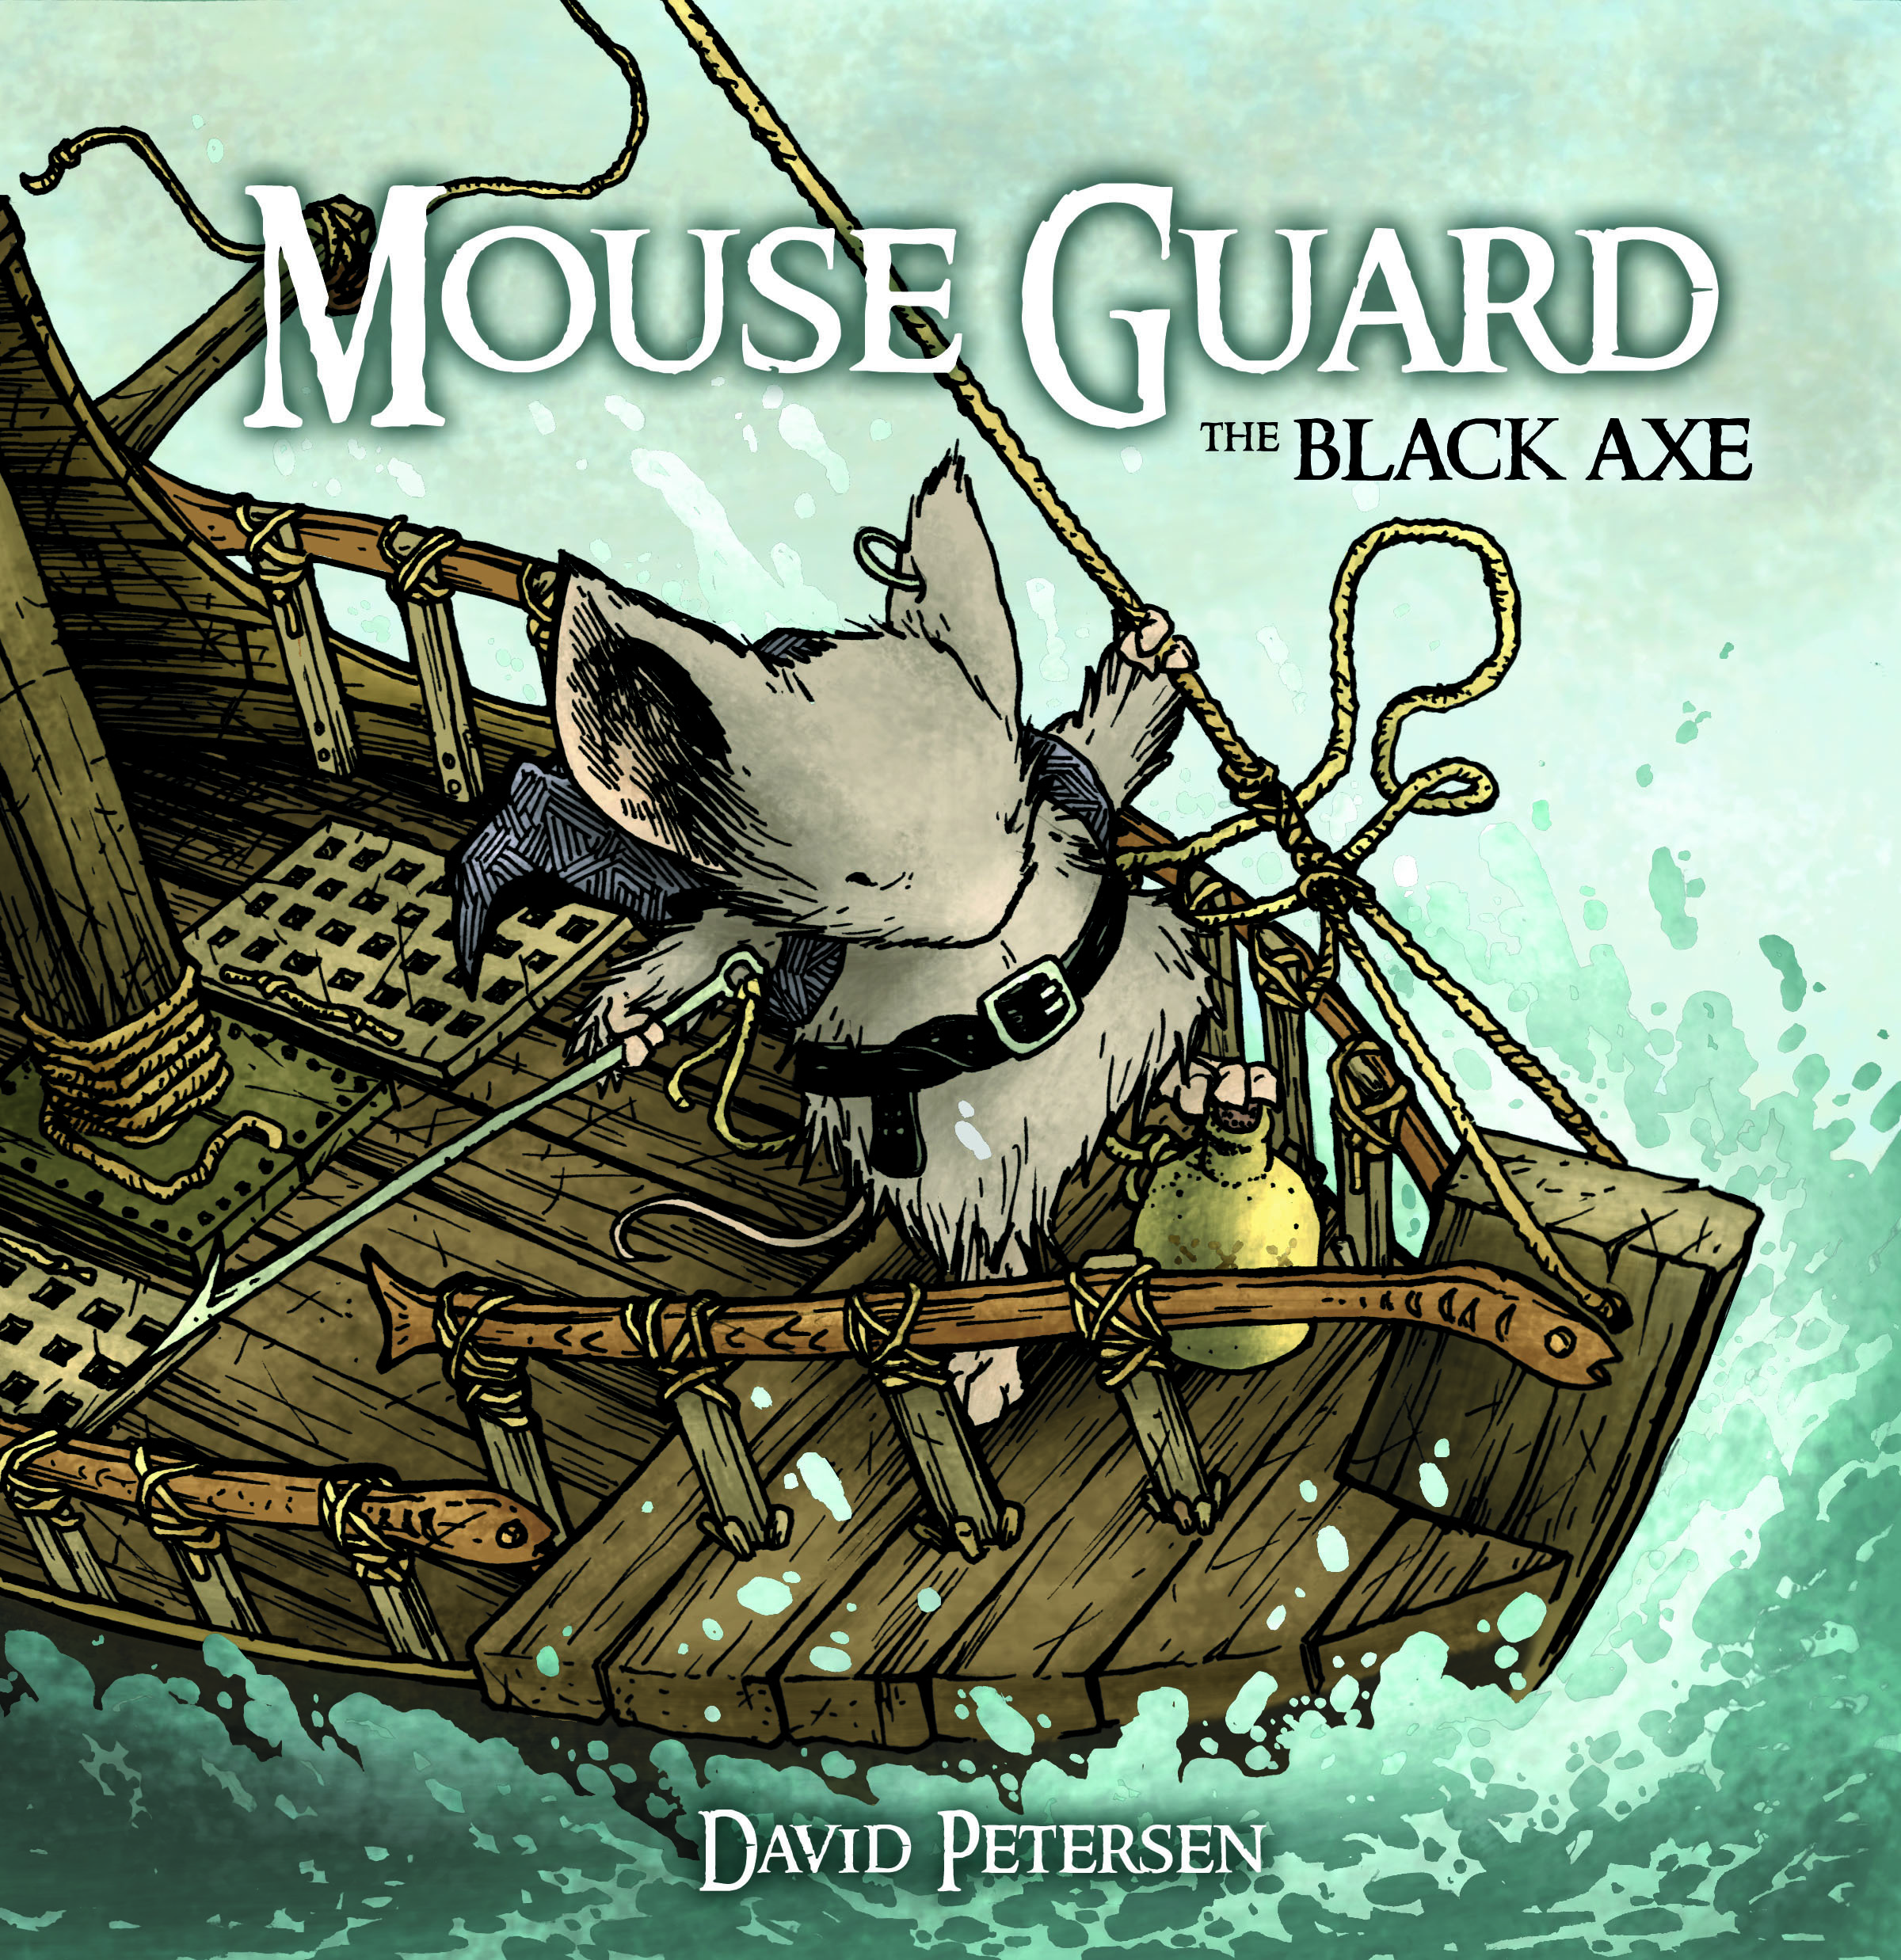 mice mouse guard computer HD Wallpaper